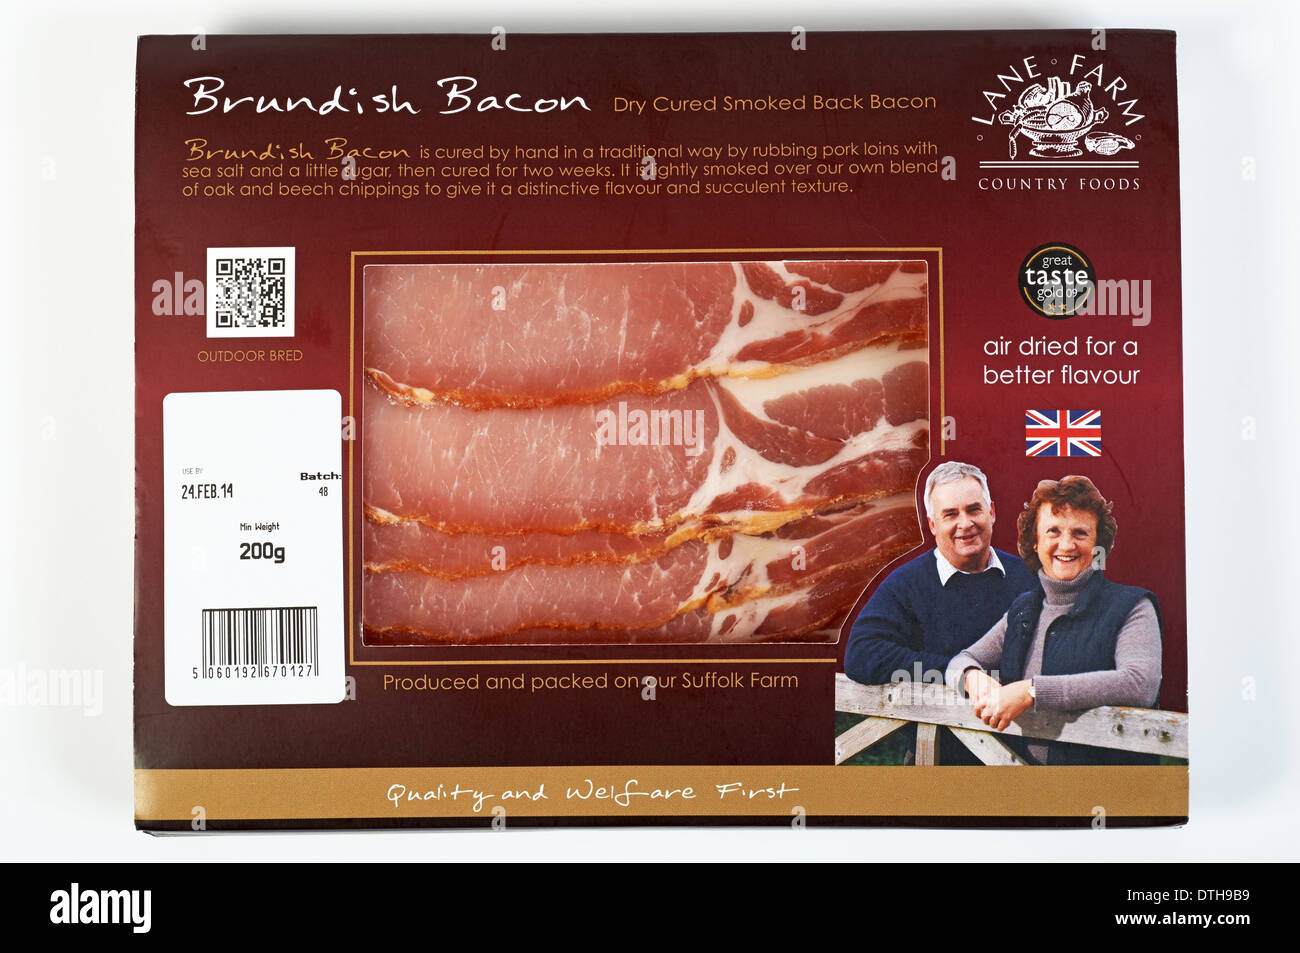 Lane Farm Country Foods Brundish dry cured back bacon - Stock Image